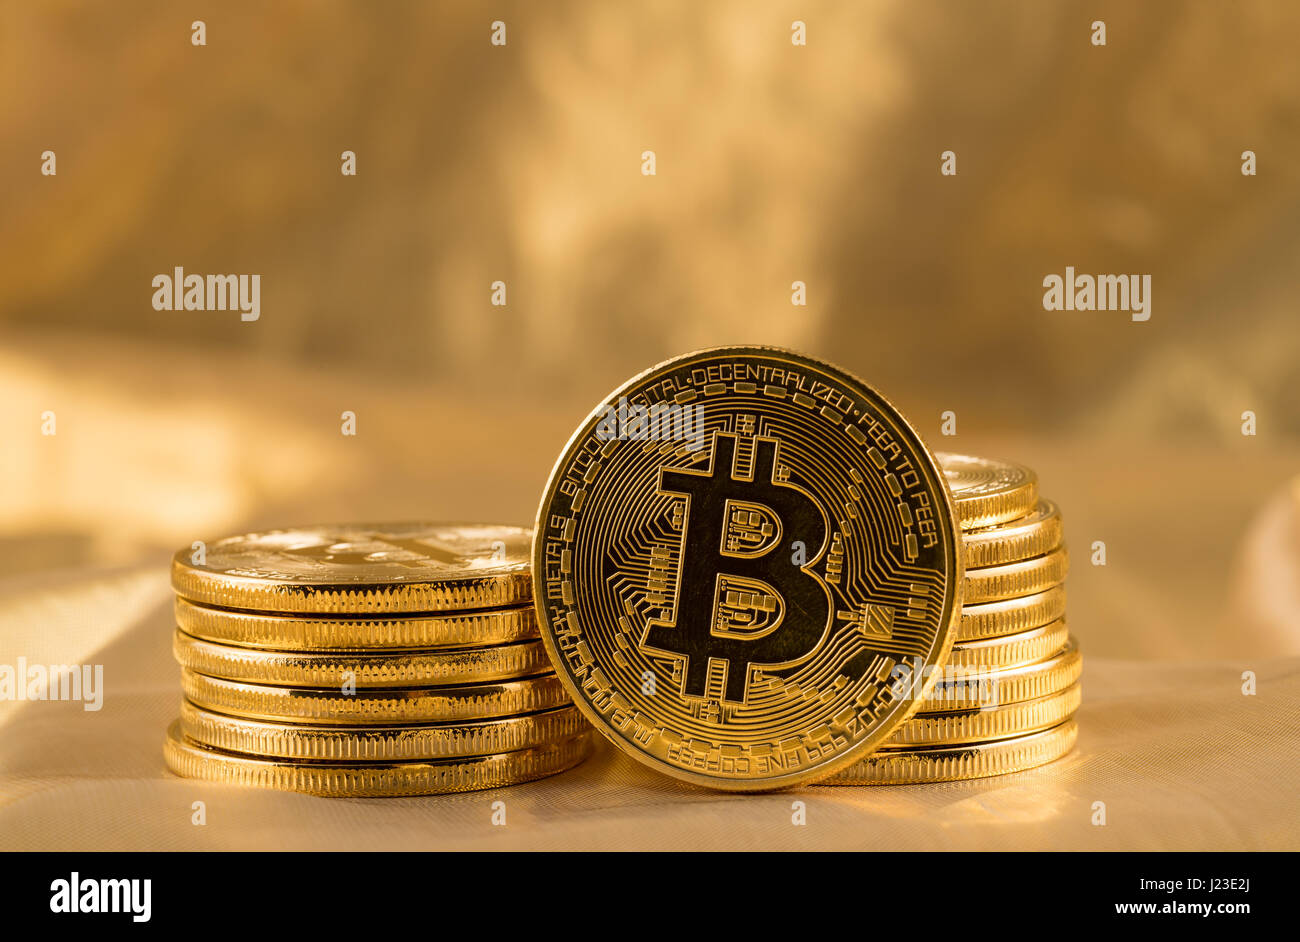 Stack of bit coins or bitcoin on gold background to illustrate blockchain and cyber currency - Stock Image